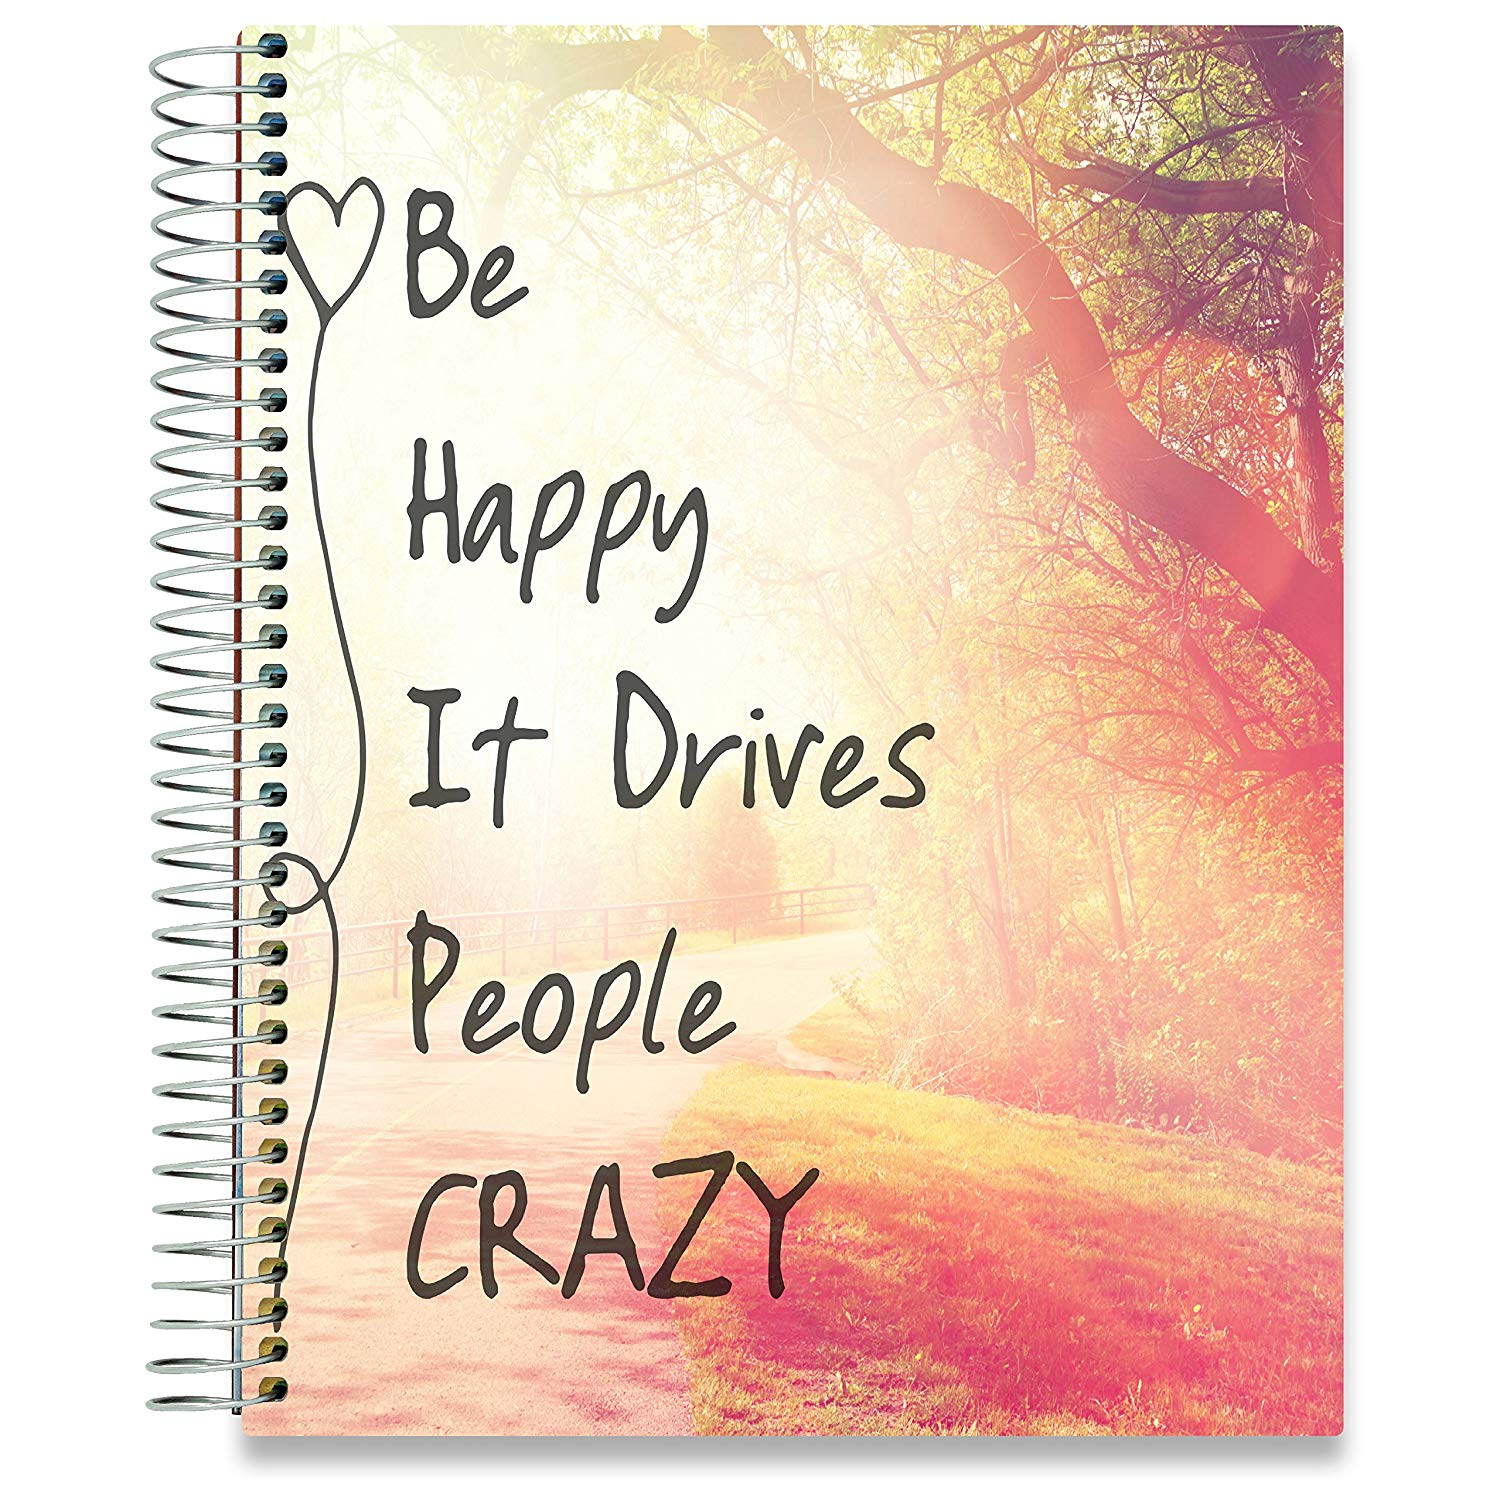 NEW: April 2020-2021 Planner - 8.5x11 - Be Happy - Tools4Wisdom